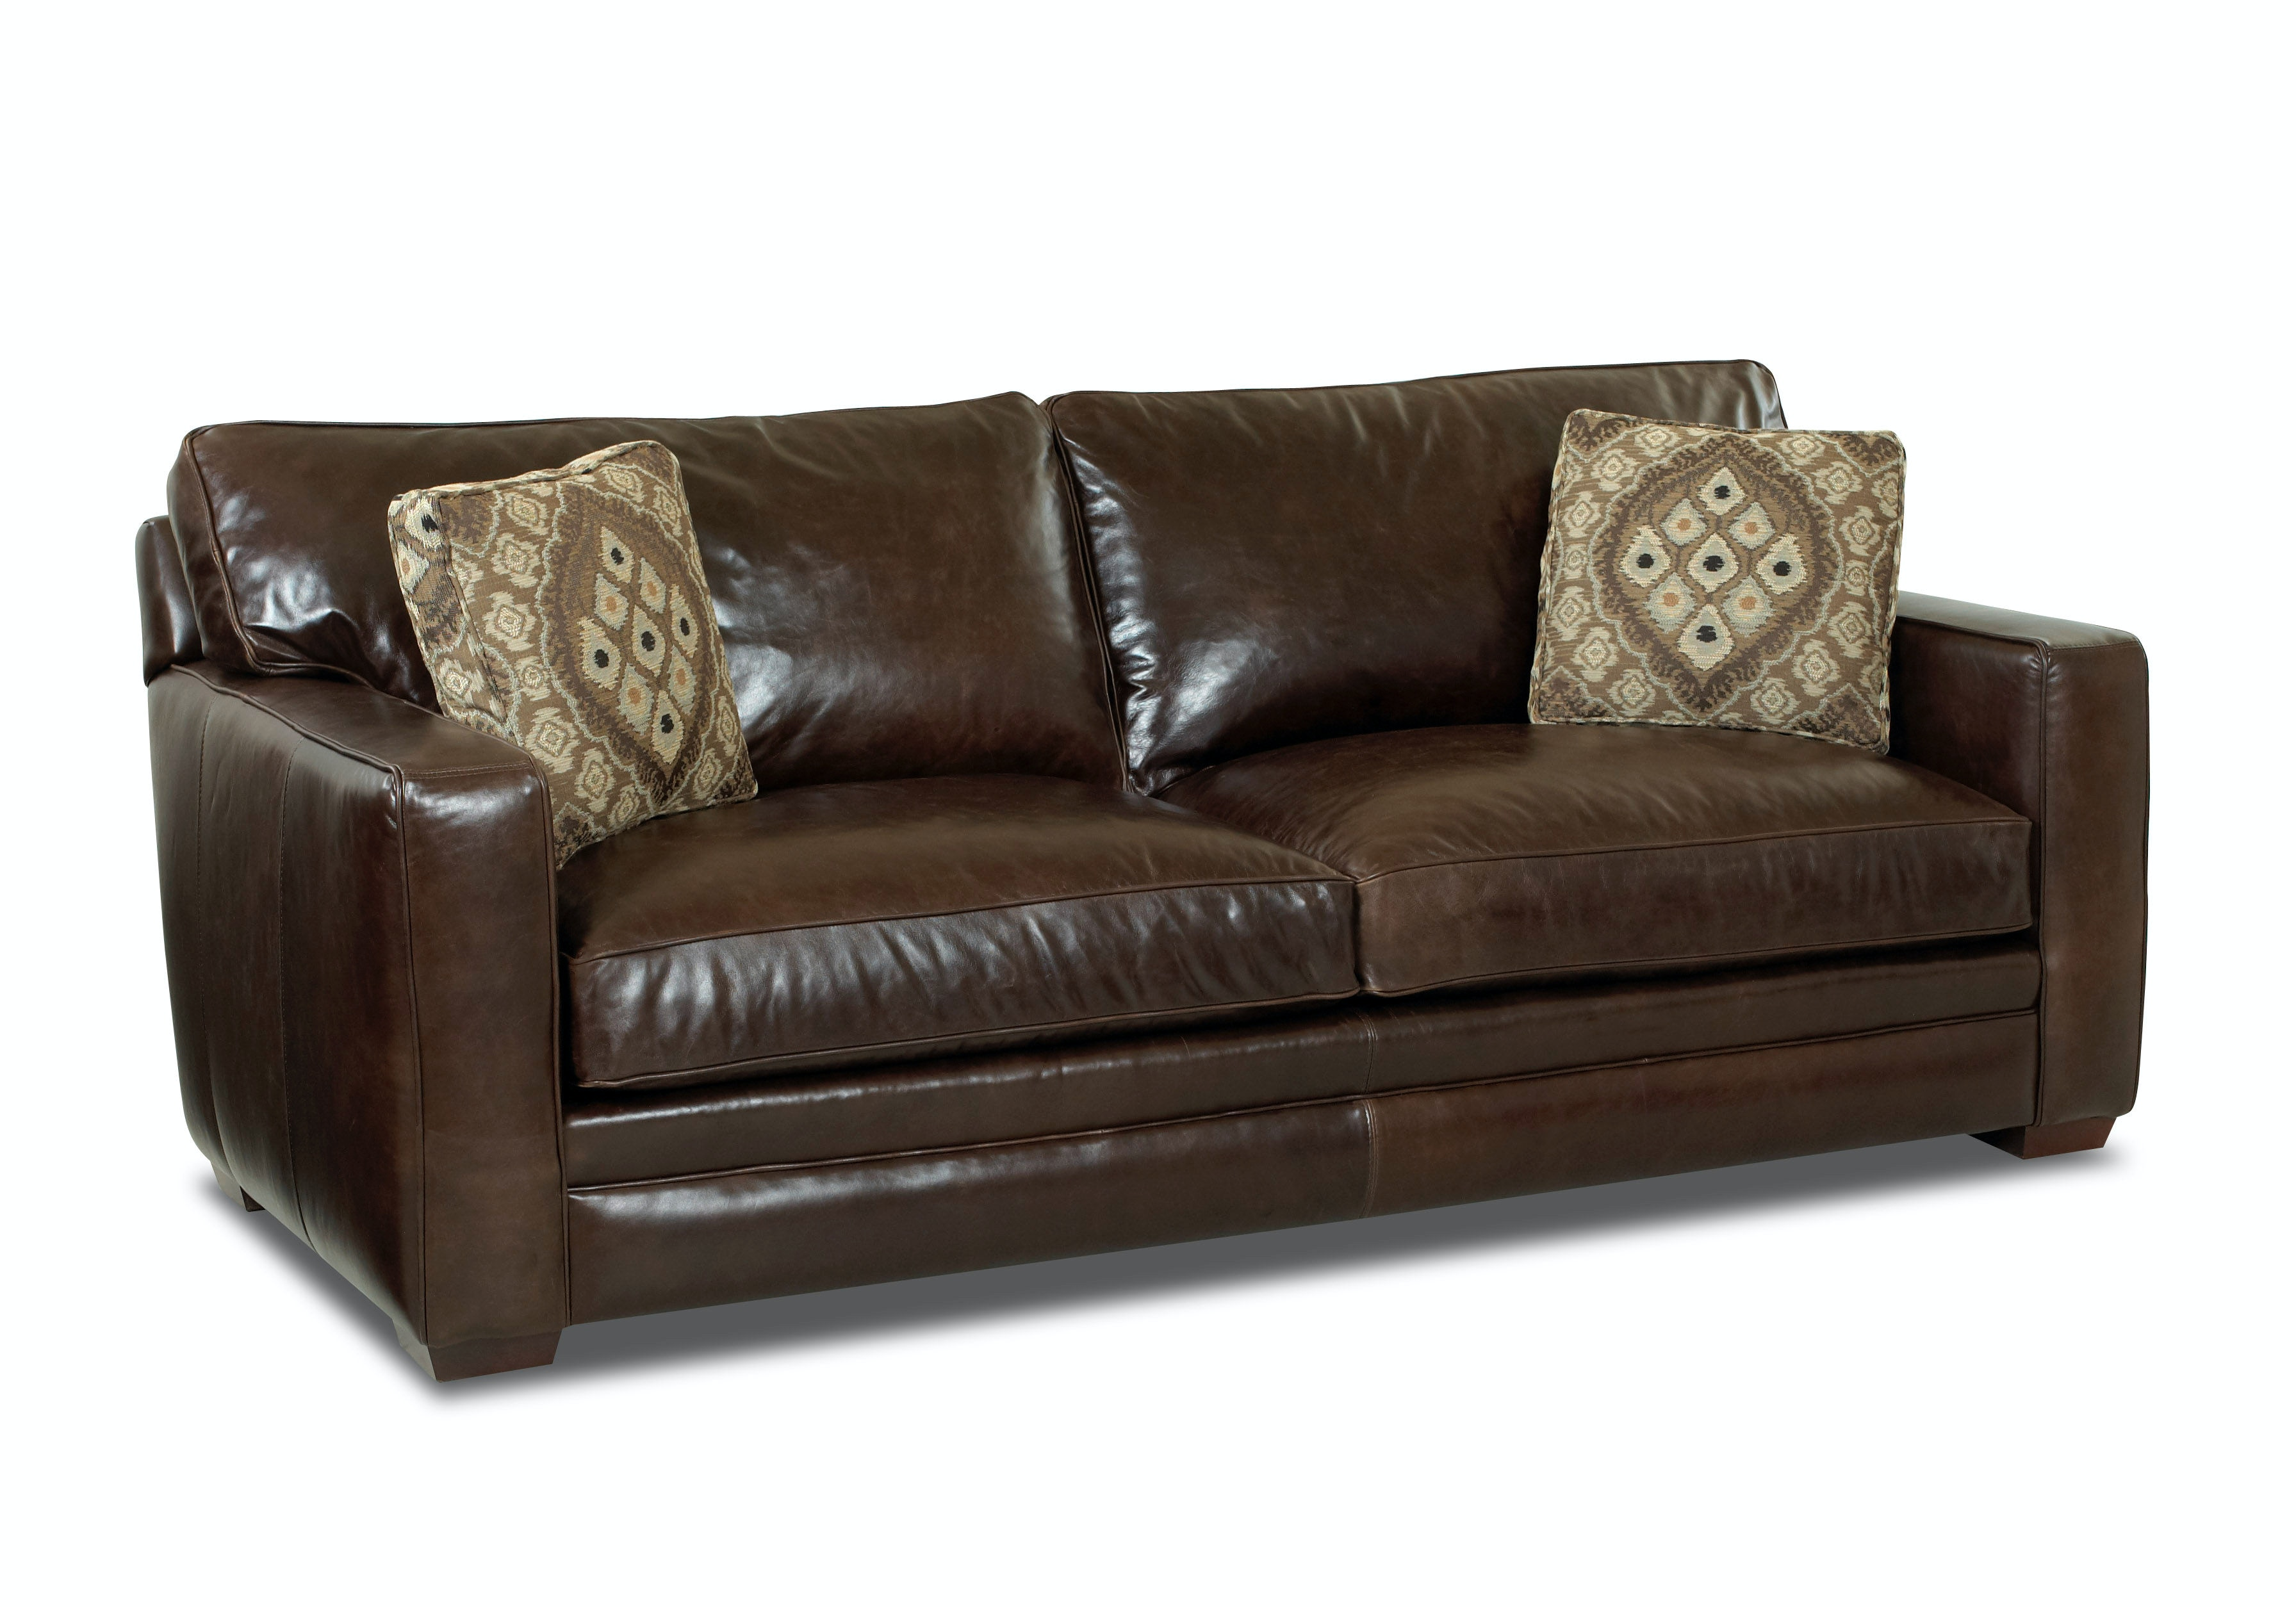 miramar leather sofa dimensions in inches comfort design living room chicago cl1009 dqsl